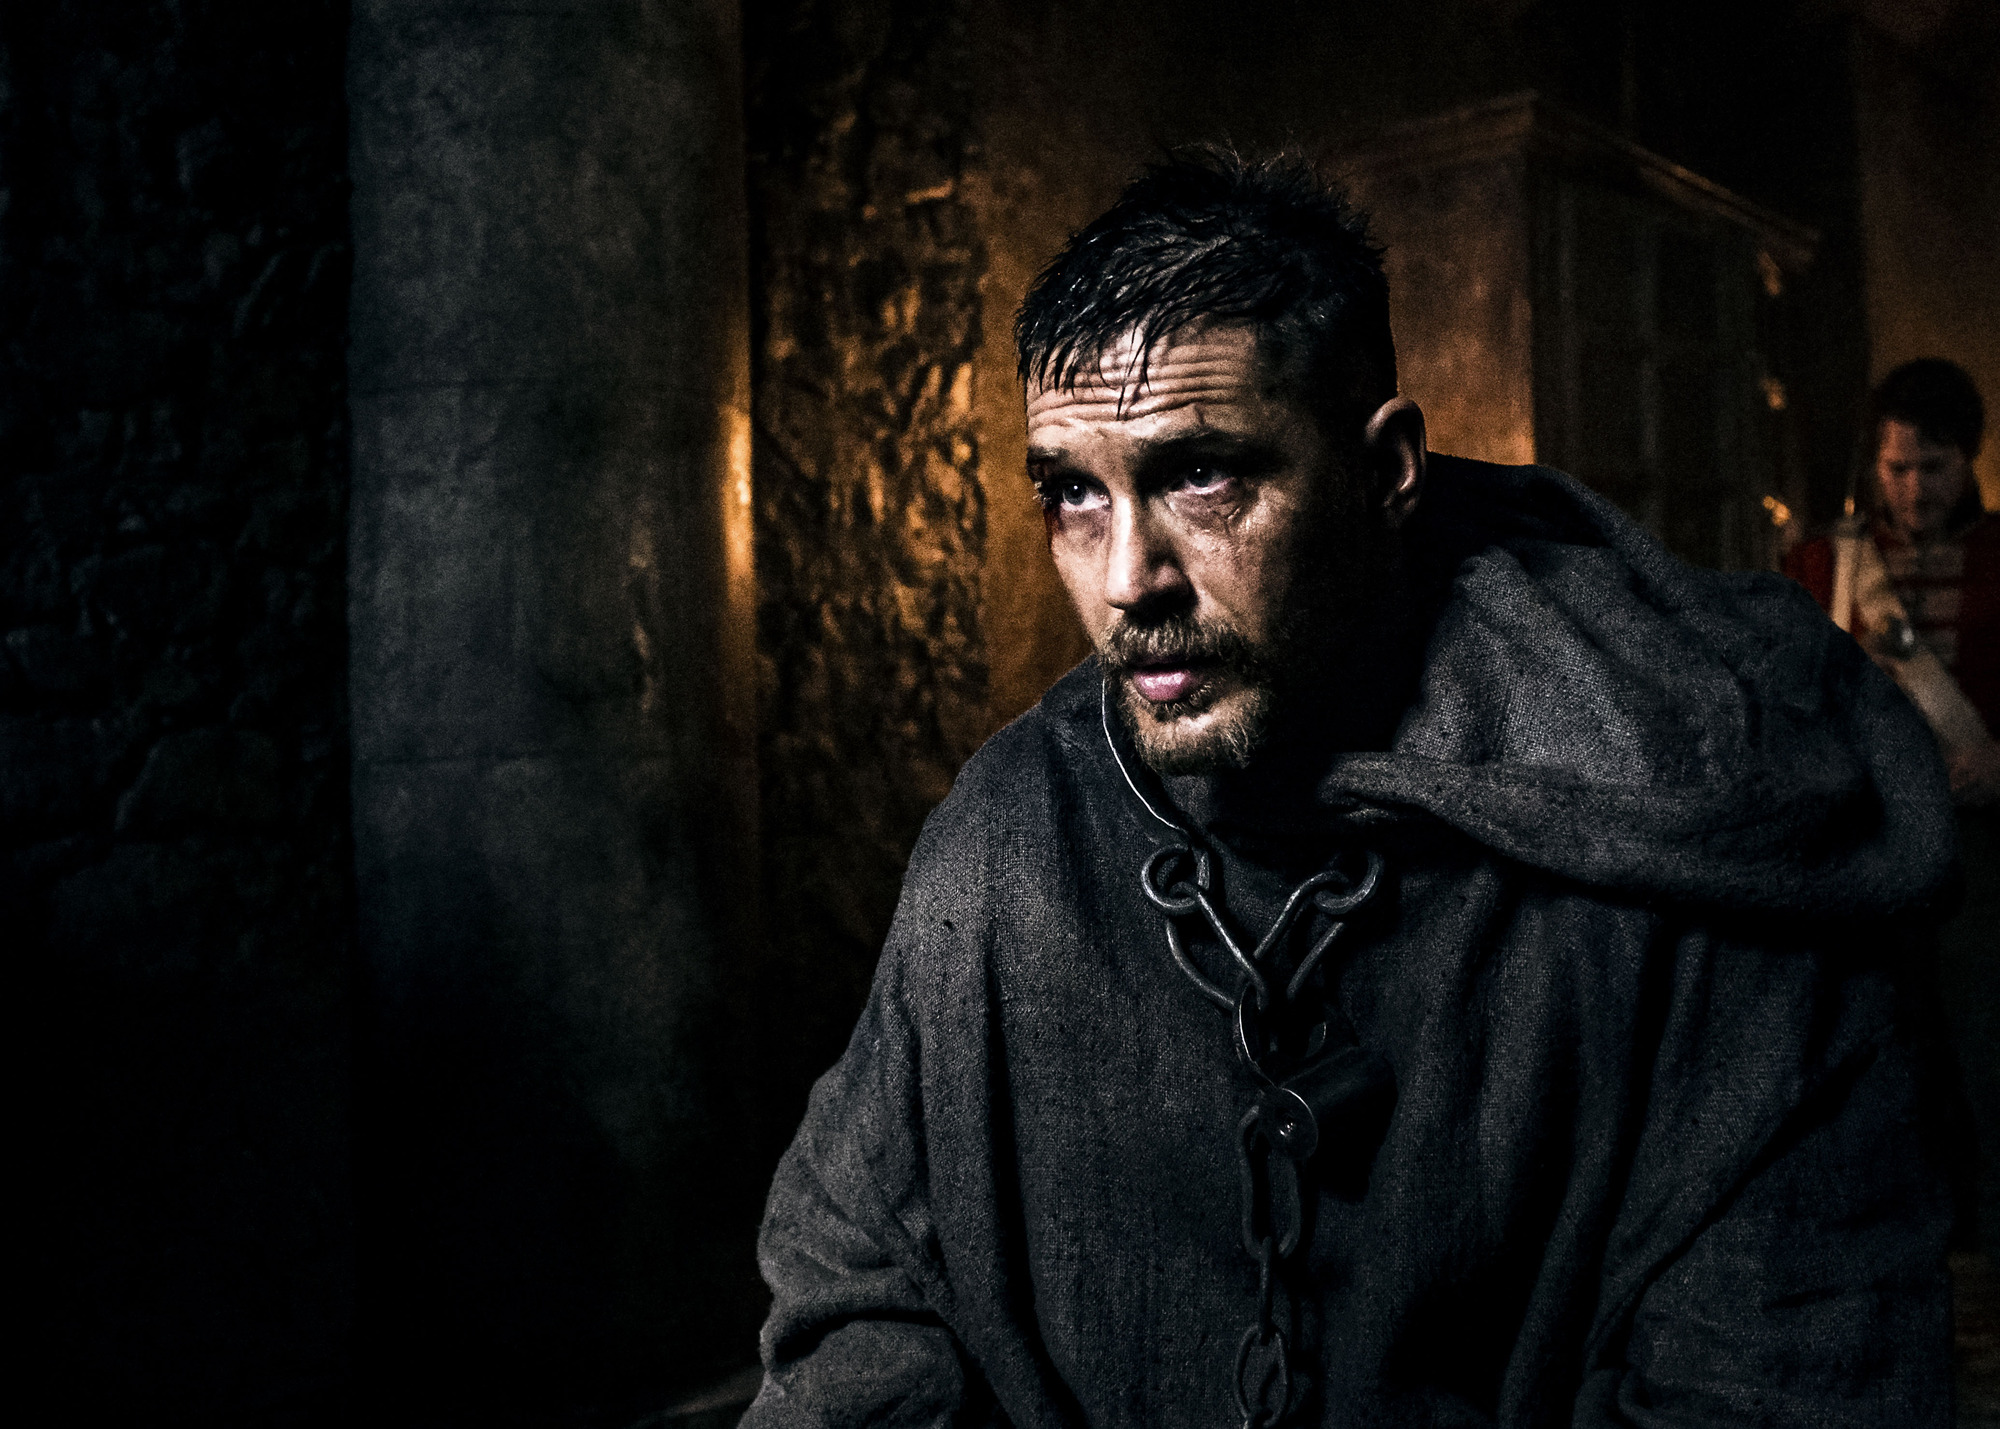 6 big unanswered questions as Tom Hardy's Taboo comes to an end